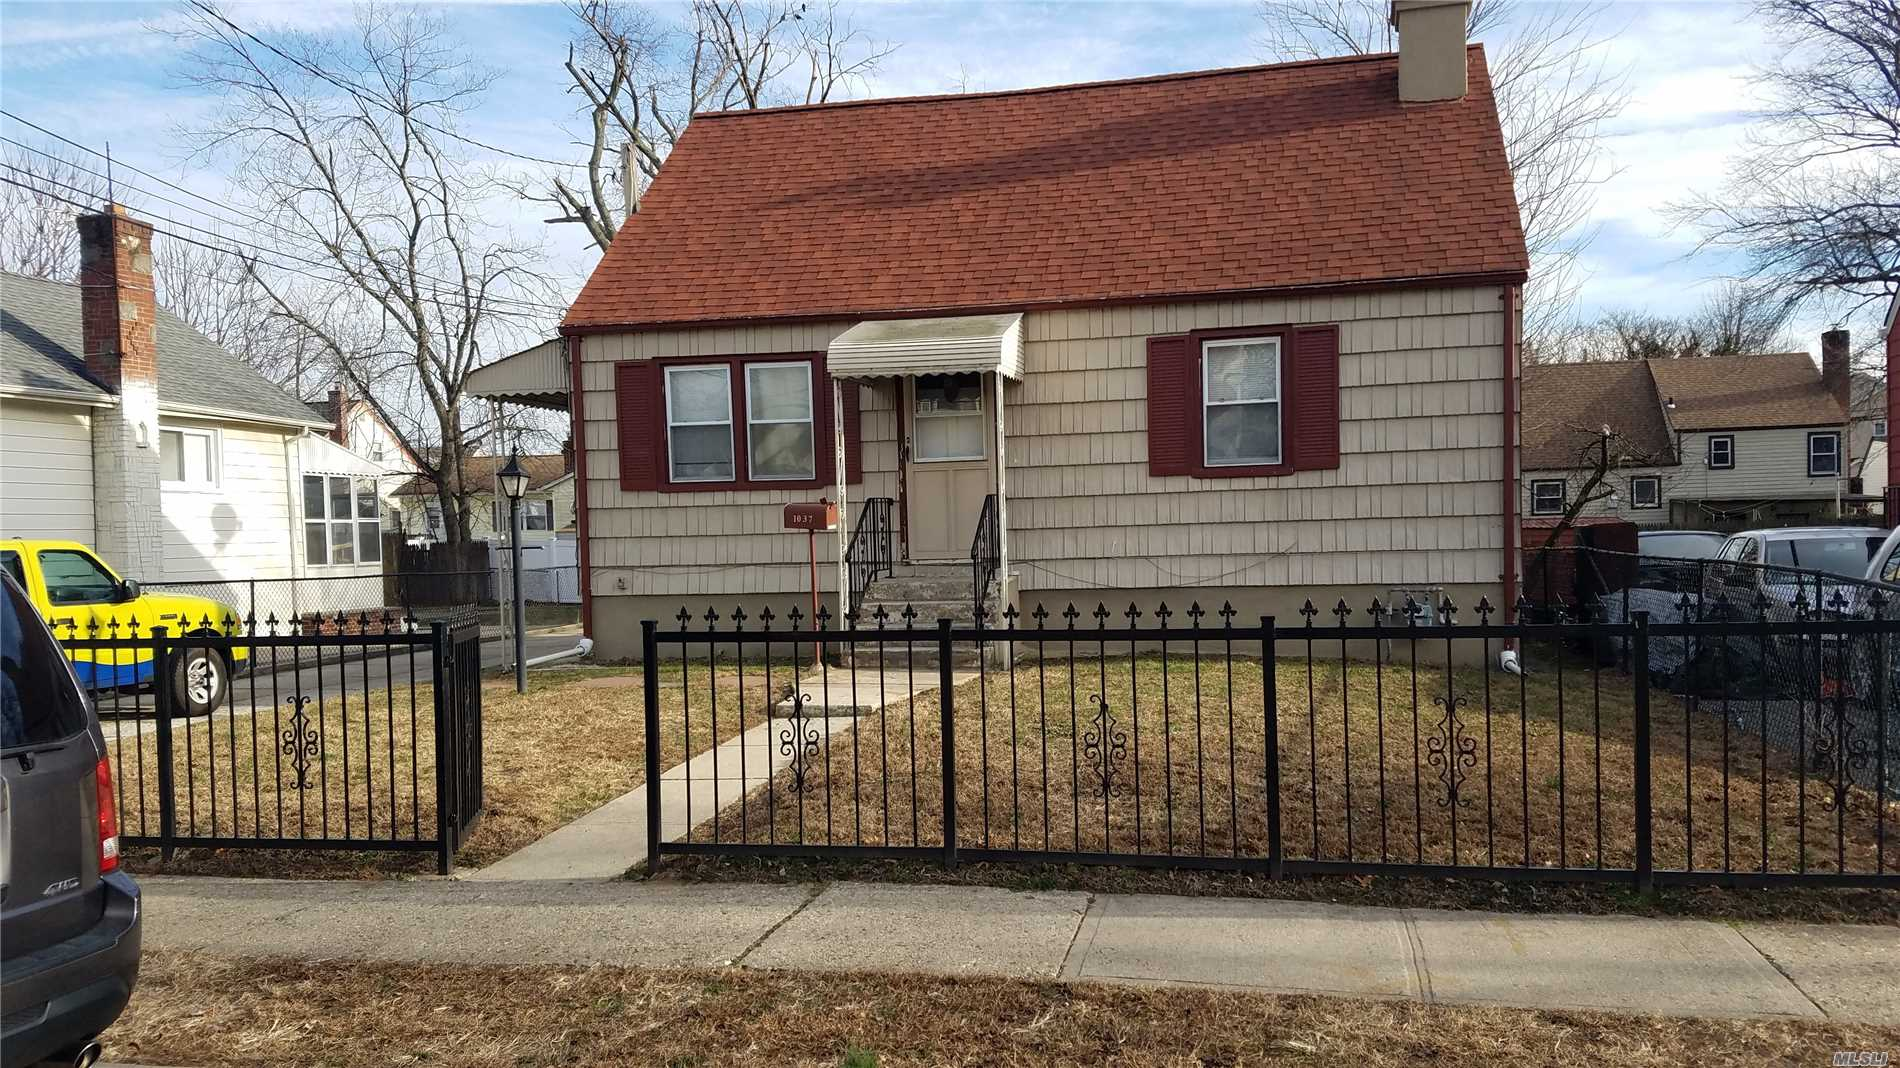 Best Value In Uniondale, Low Taxes, Dead End Street. Garage Door New, 2 Sheds In Yard, Roof 5 Years Old